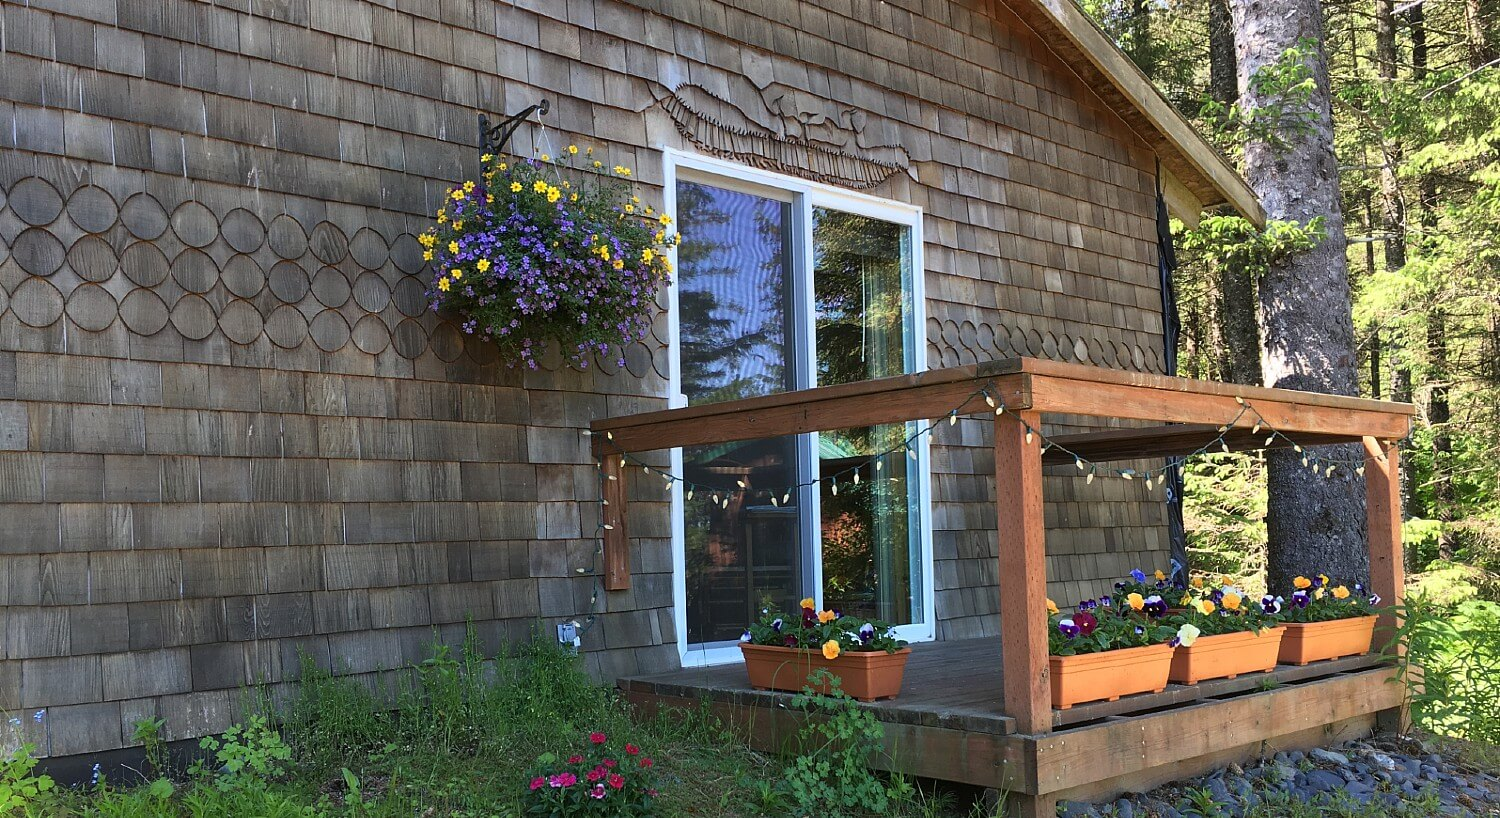 Small side porch of a brown wood cabin with hanging lights and several flower baskets